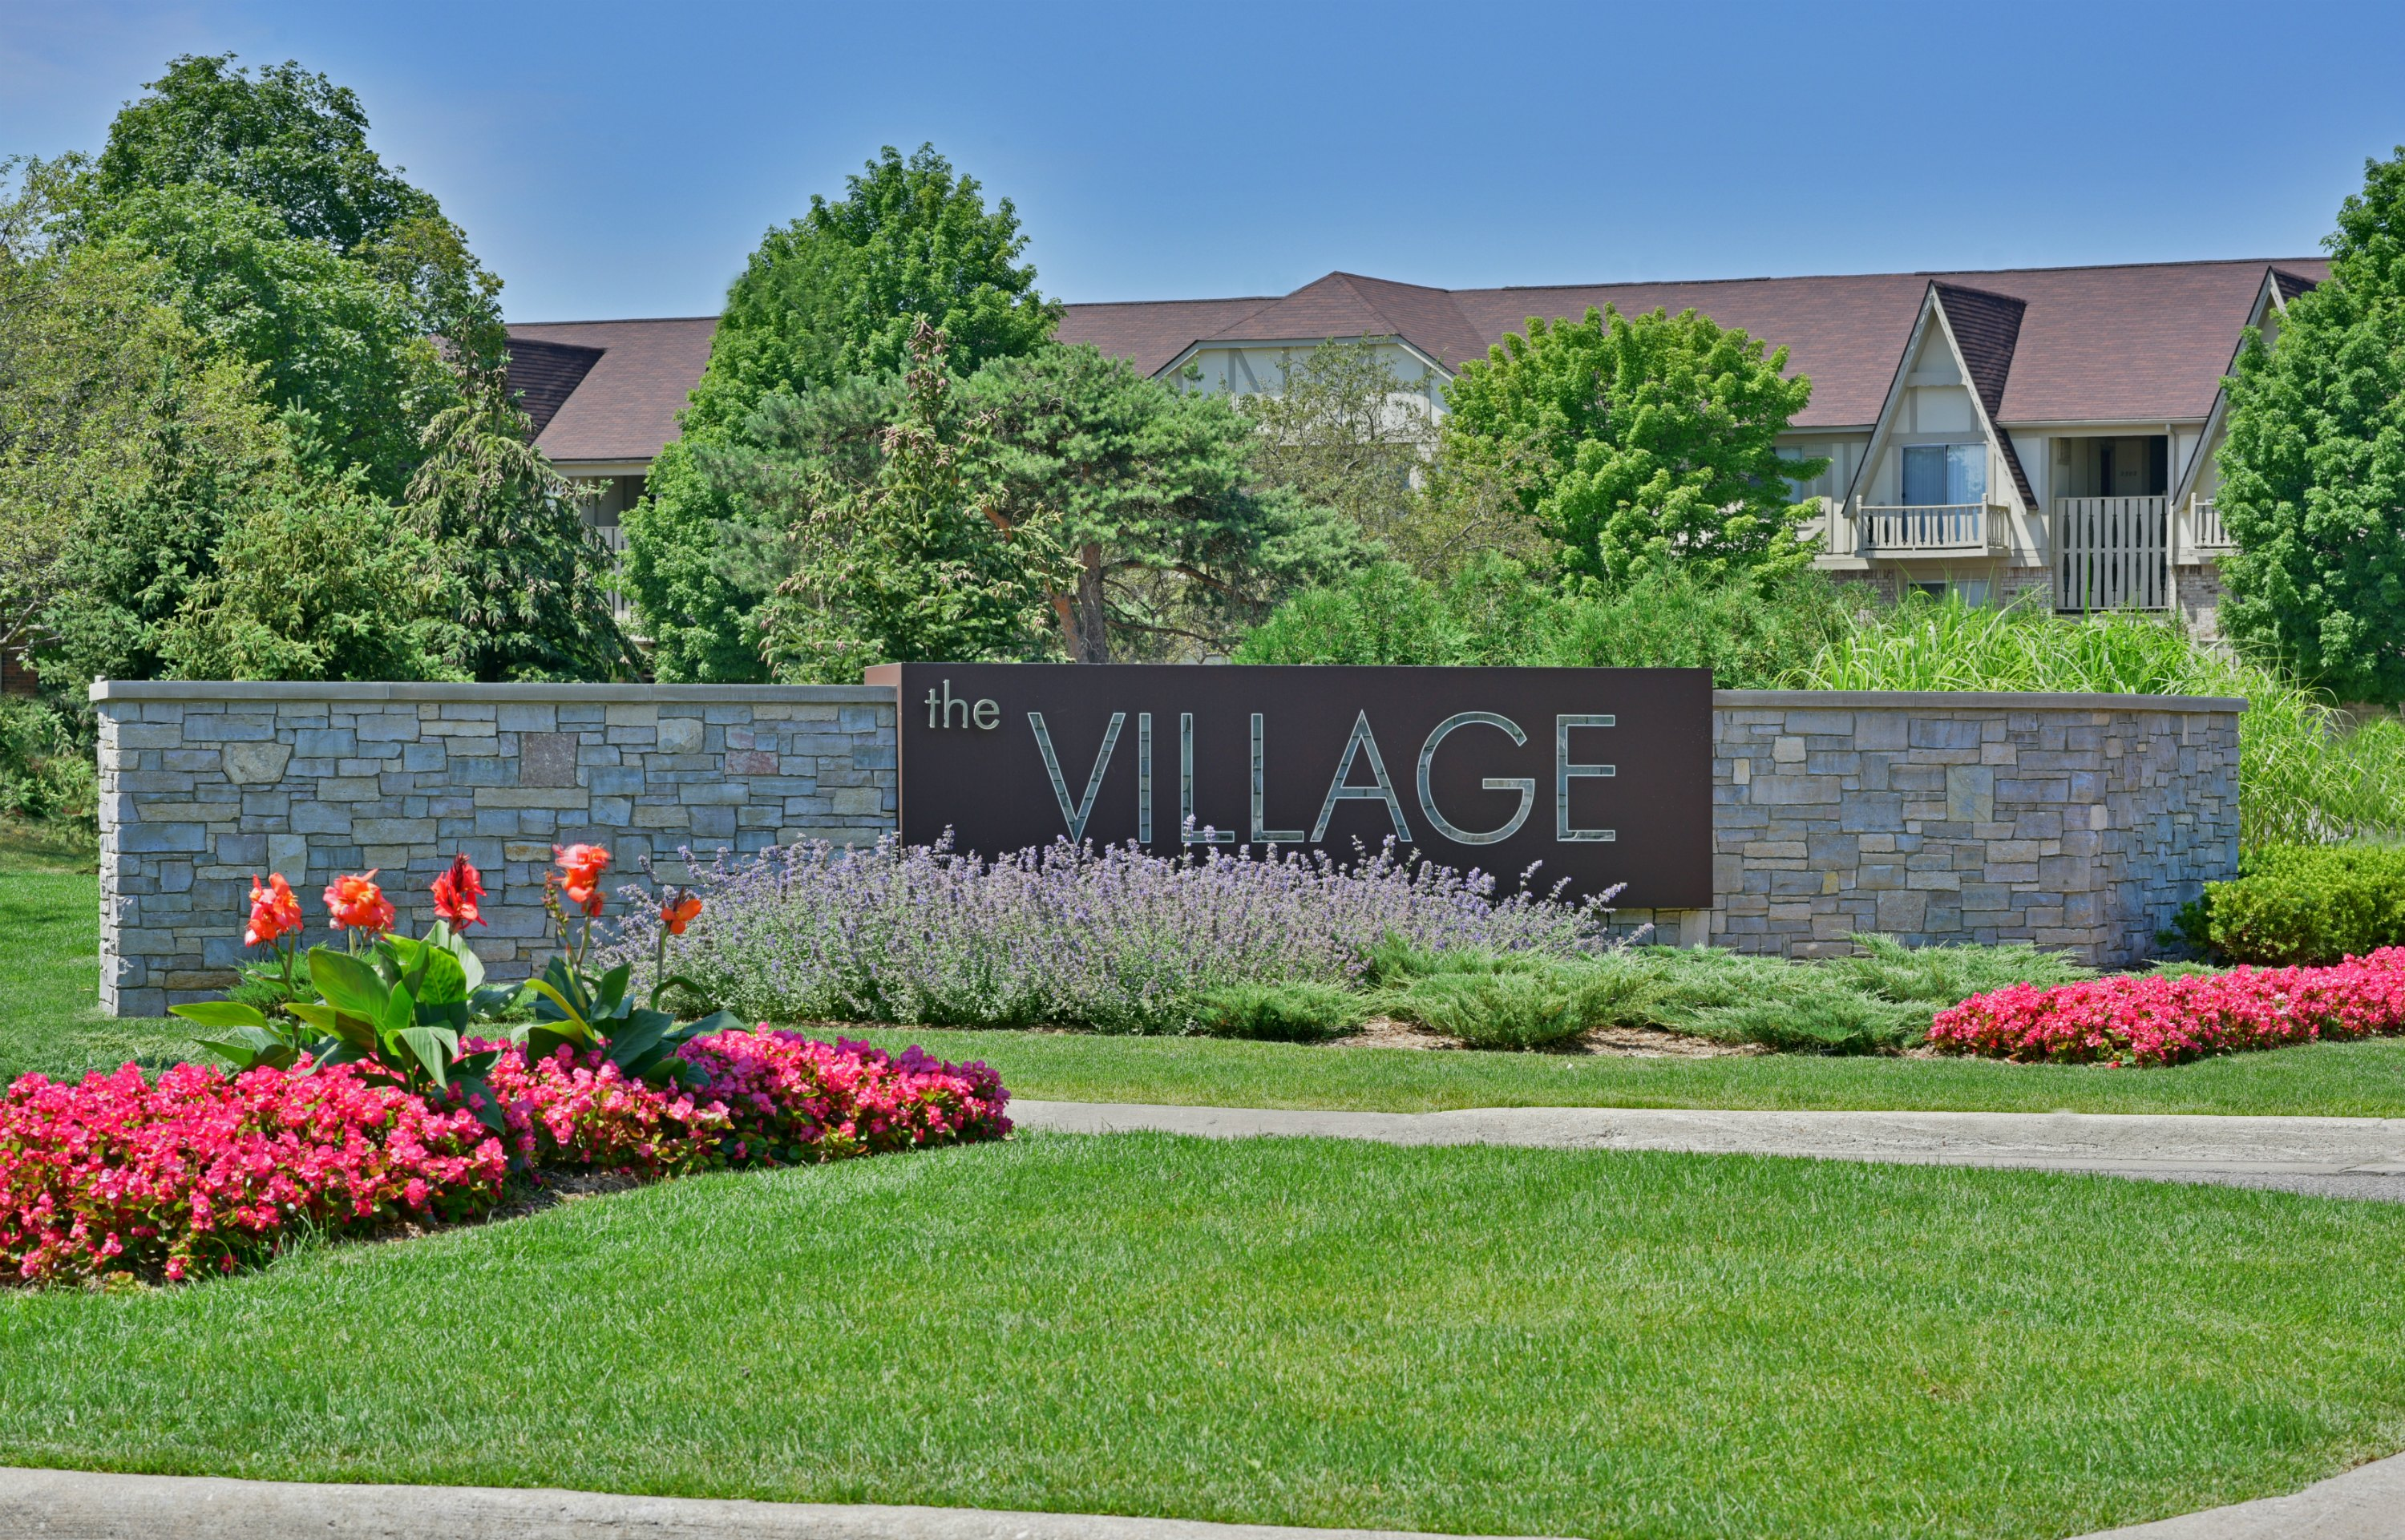 The Village in Wixom